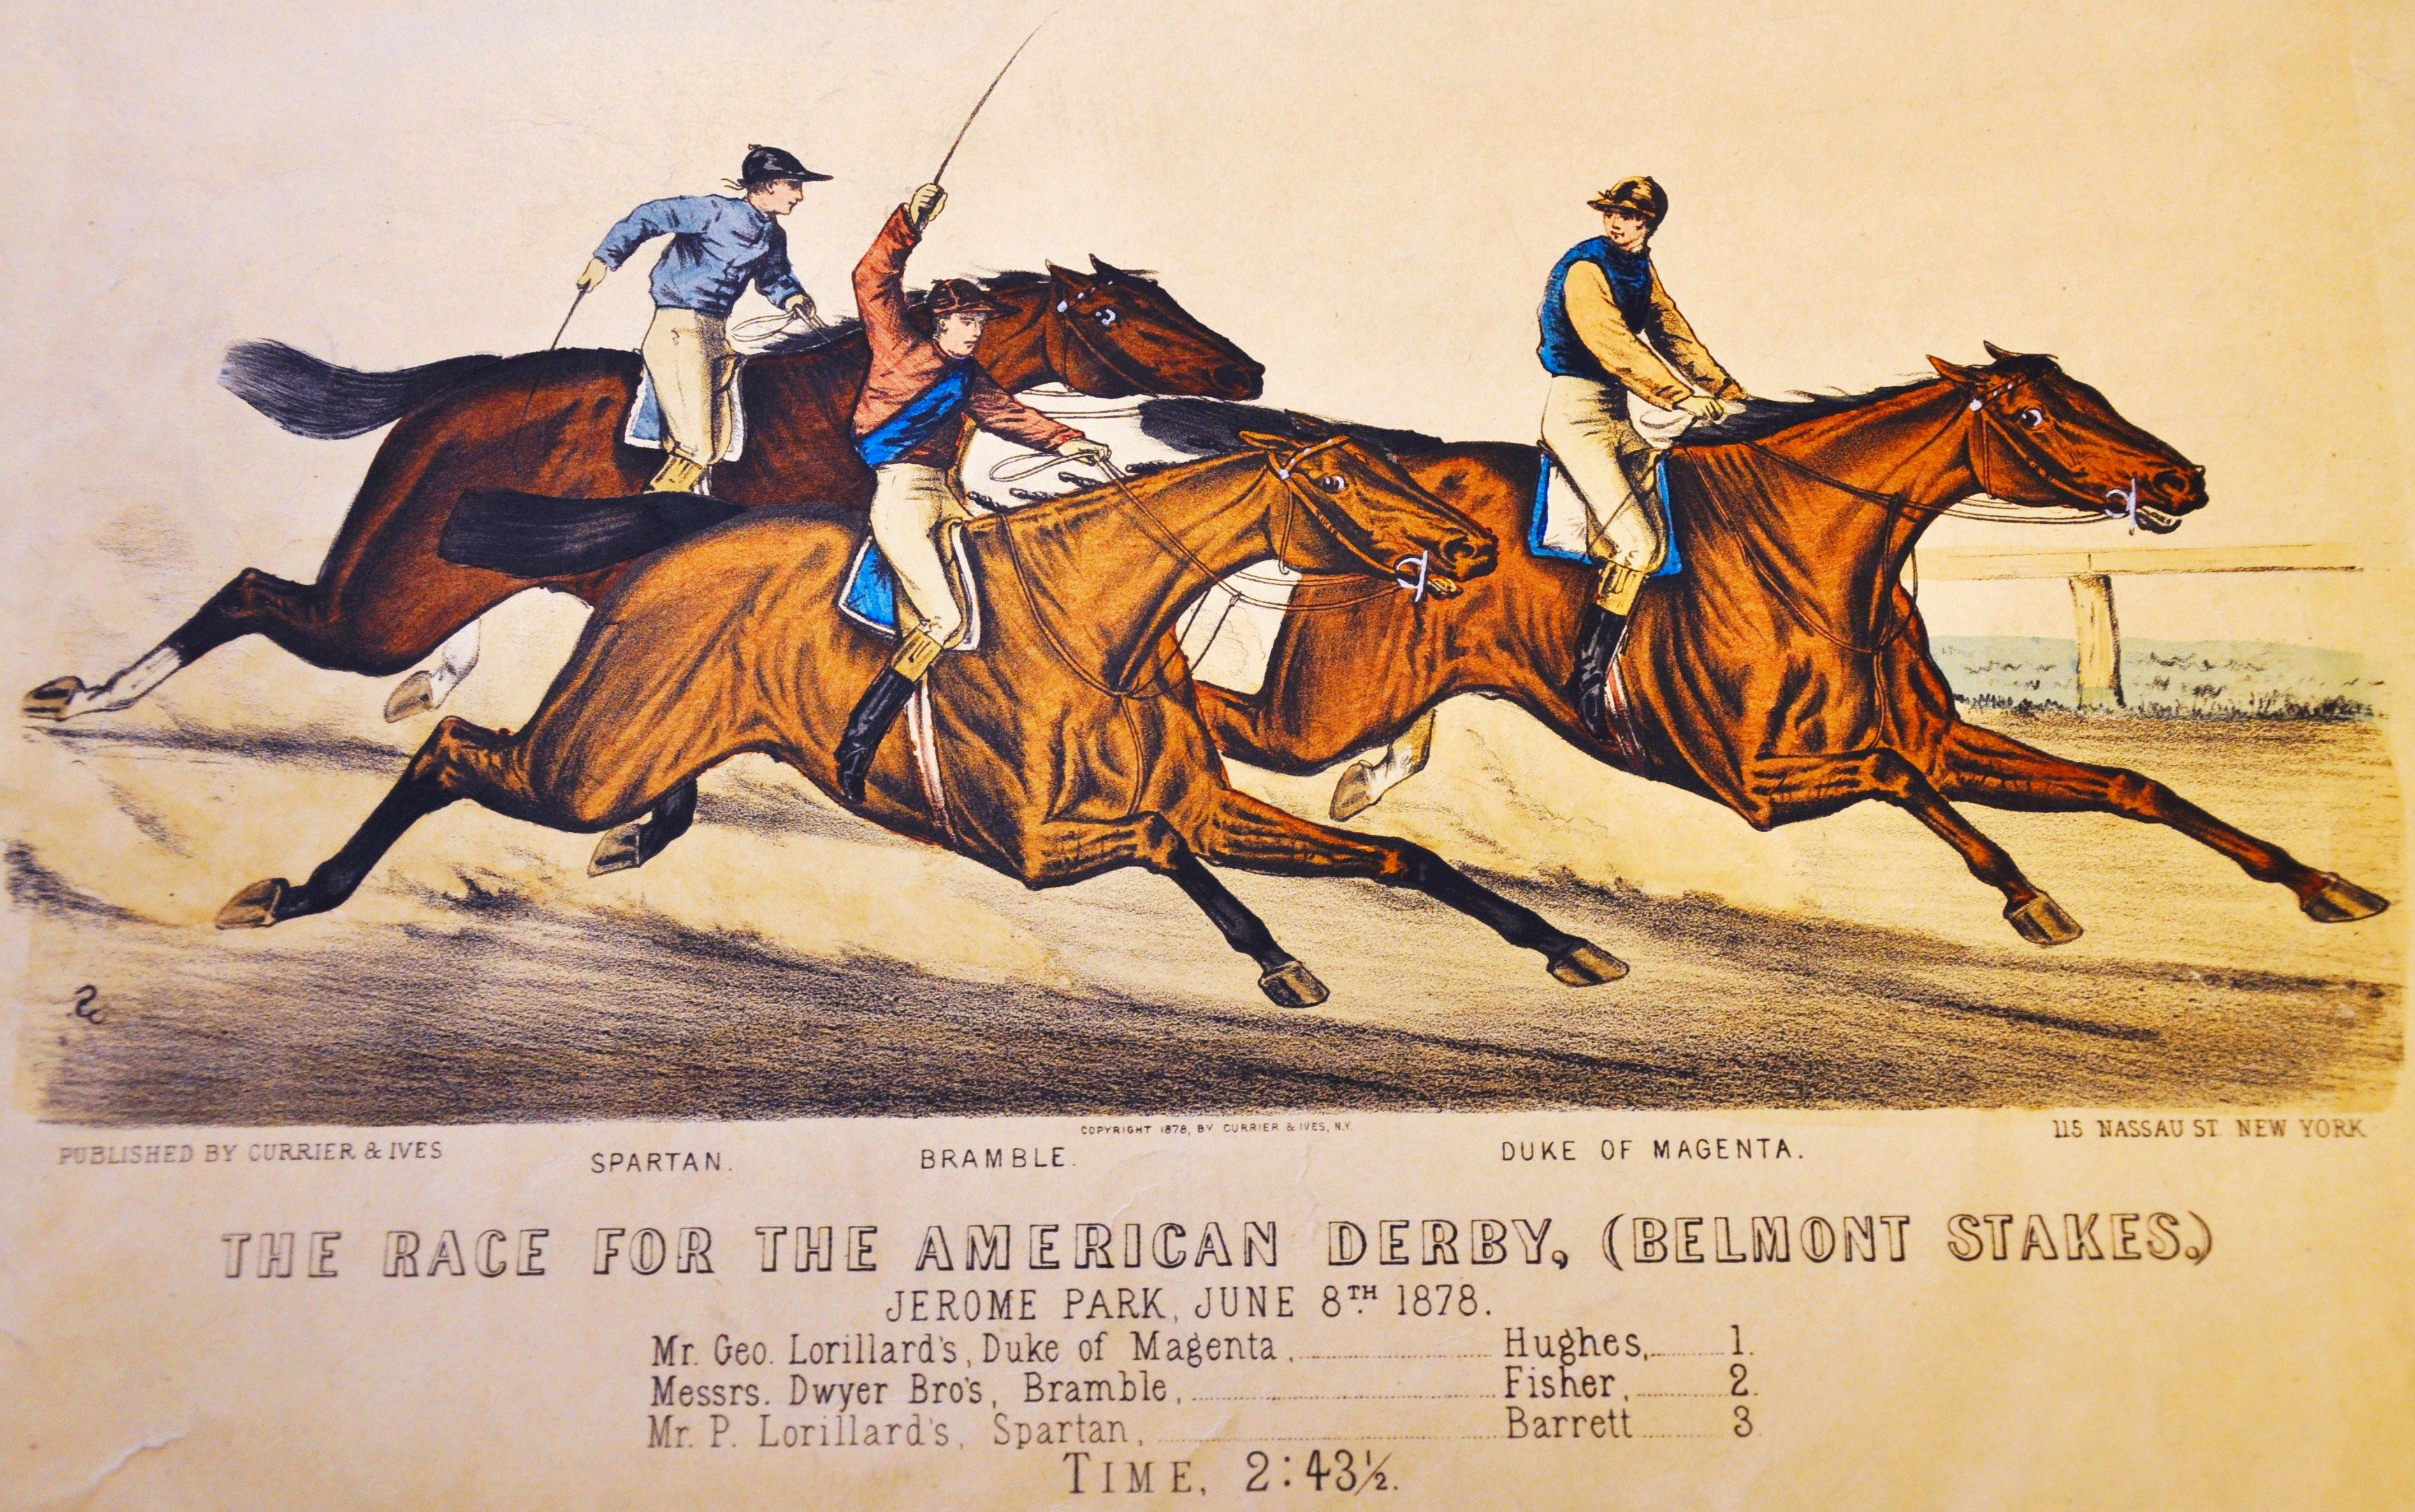 Currier & Ives print depicting the 1878 Belmont Stakes at Jerome Park, won by Duke of Magenta (Museum Collection)